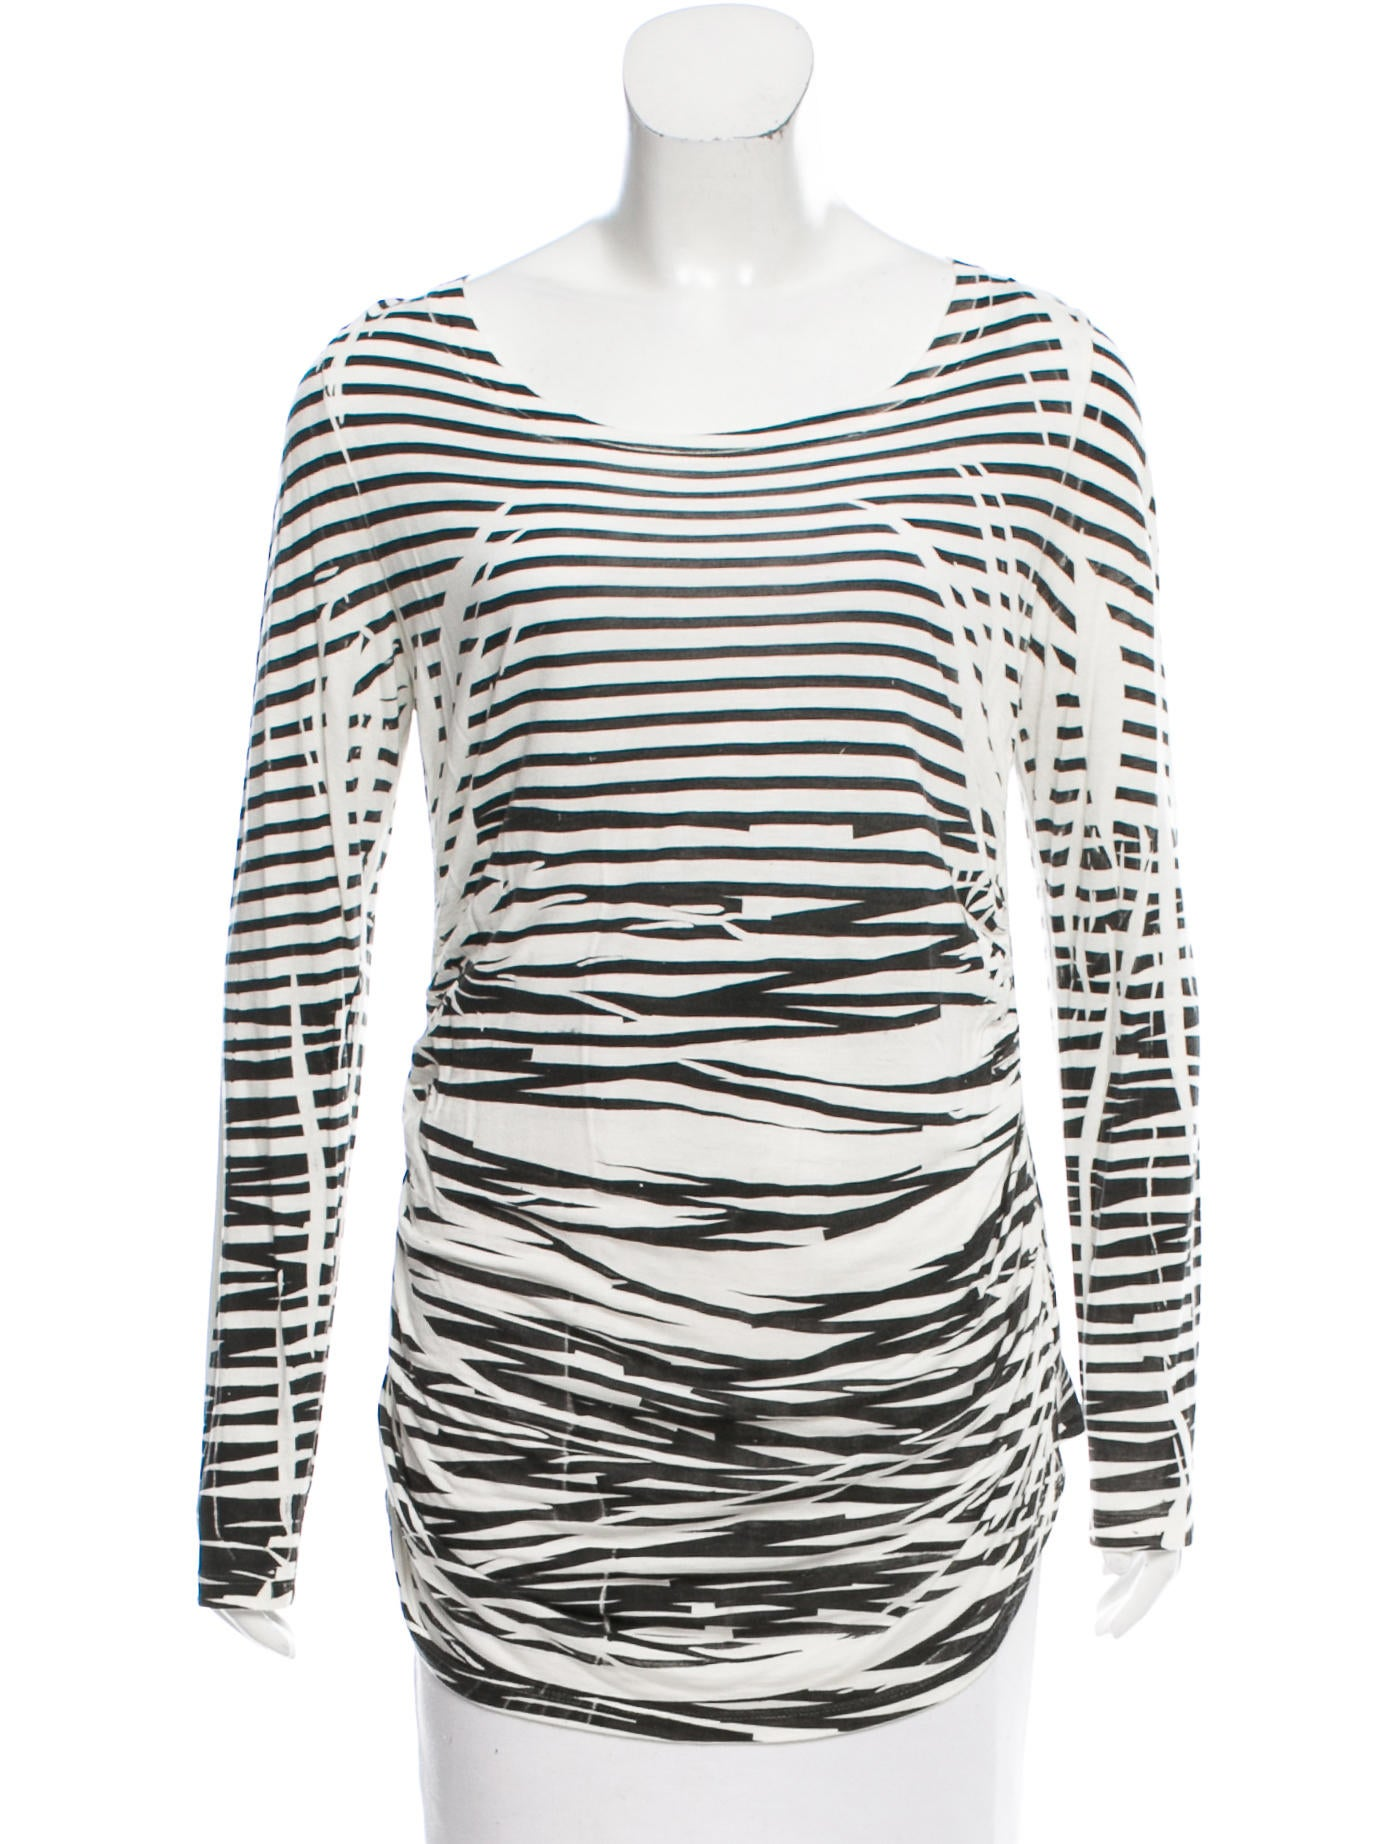 Elizabeth and james striped long sleeve t shirt clothing Striped long sleeve t shirt